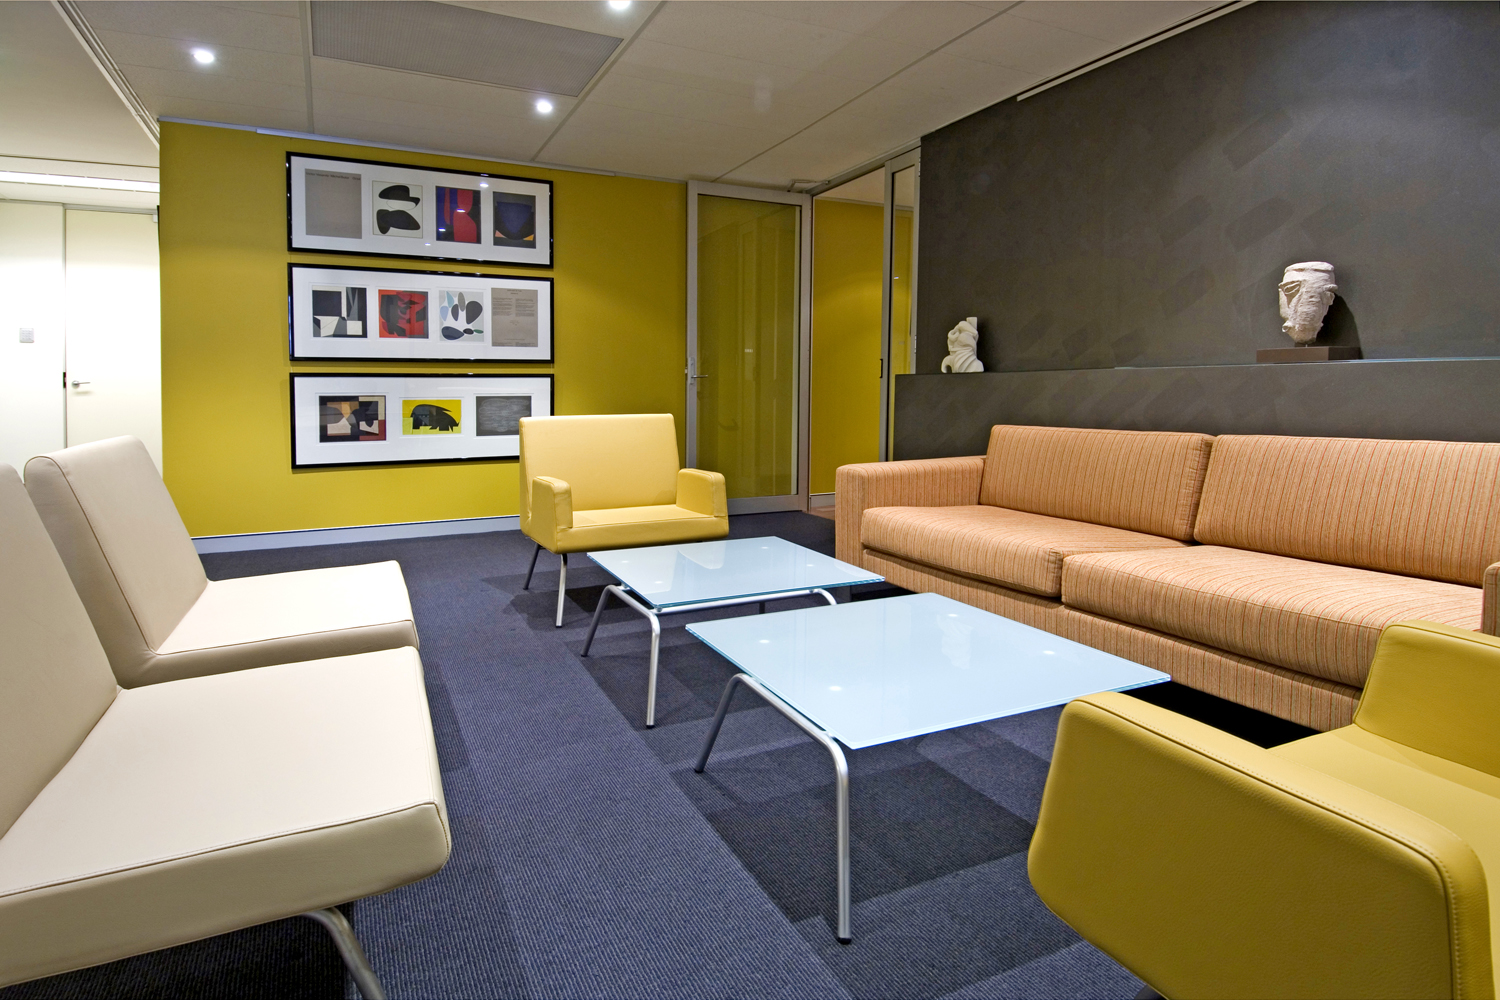 Commercial Office Fitouts + Sydney + Interior Design + Project Management Curwoods